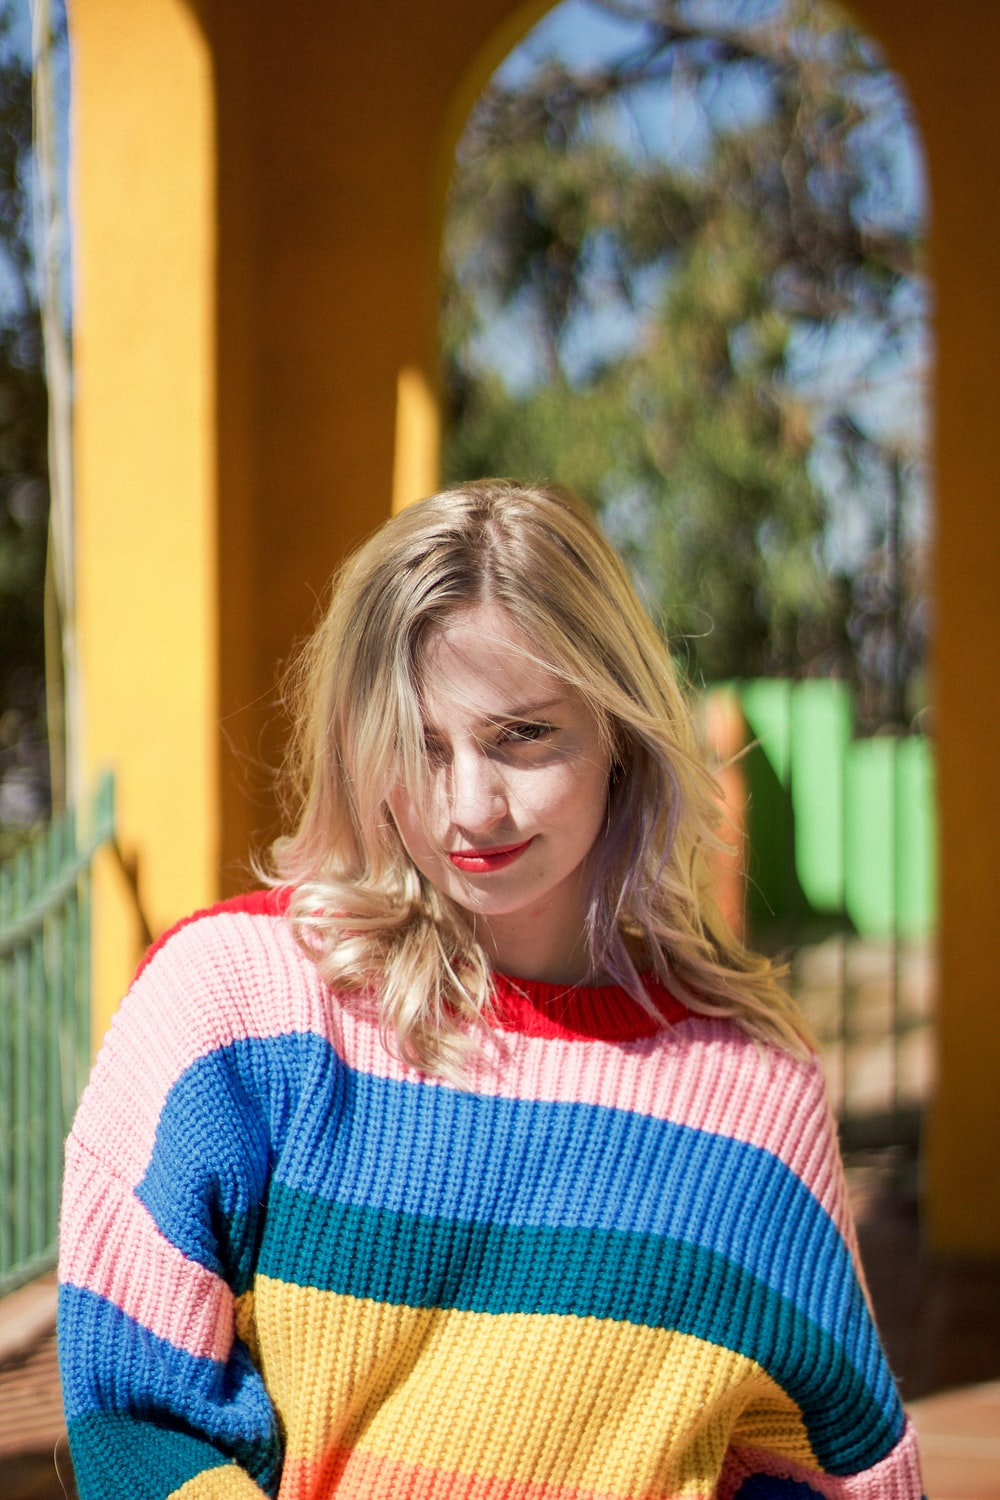 woman in red, pink, blue, and yellow striped knit sweater